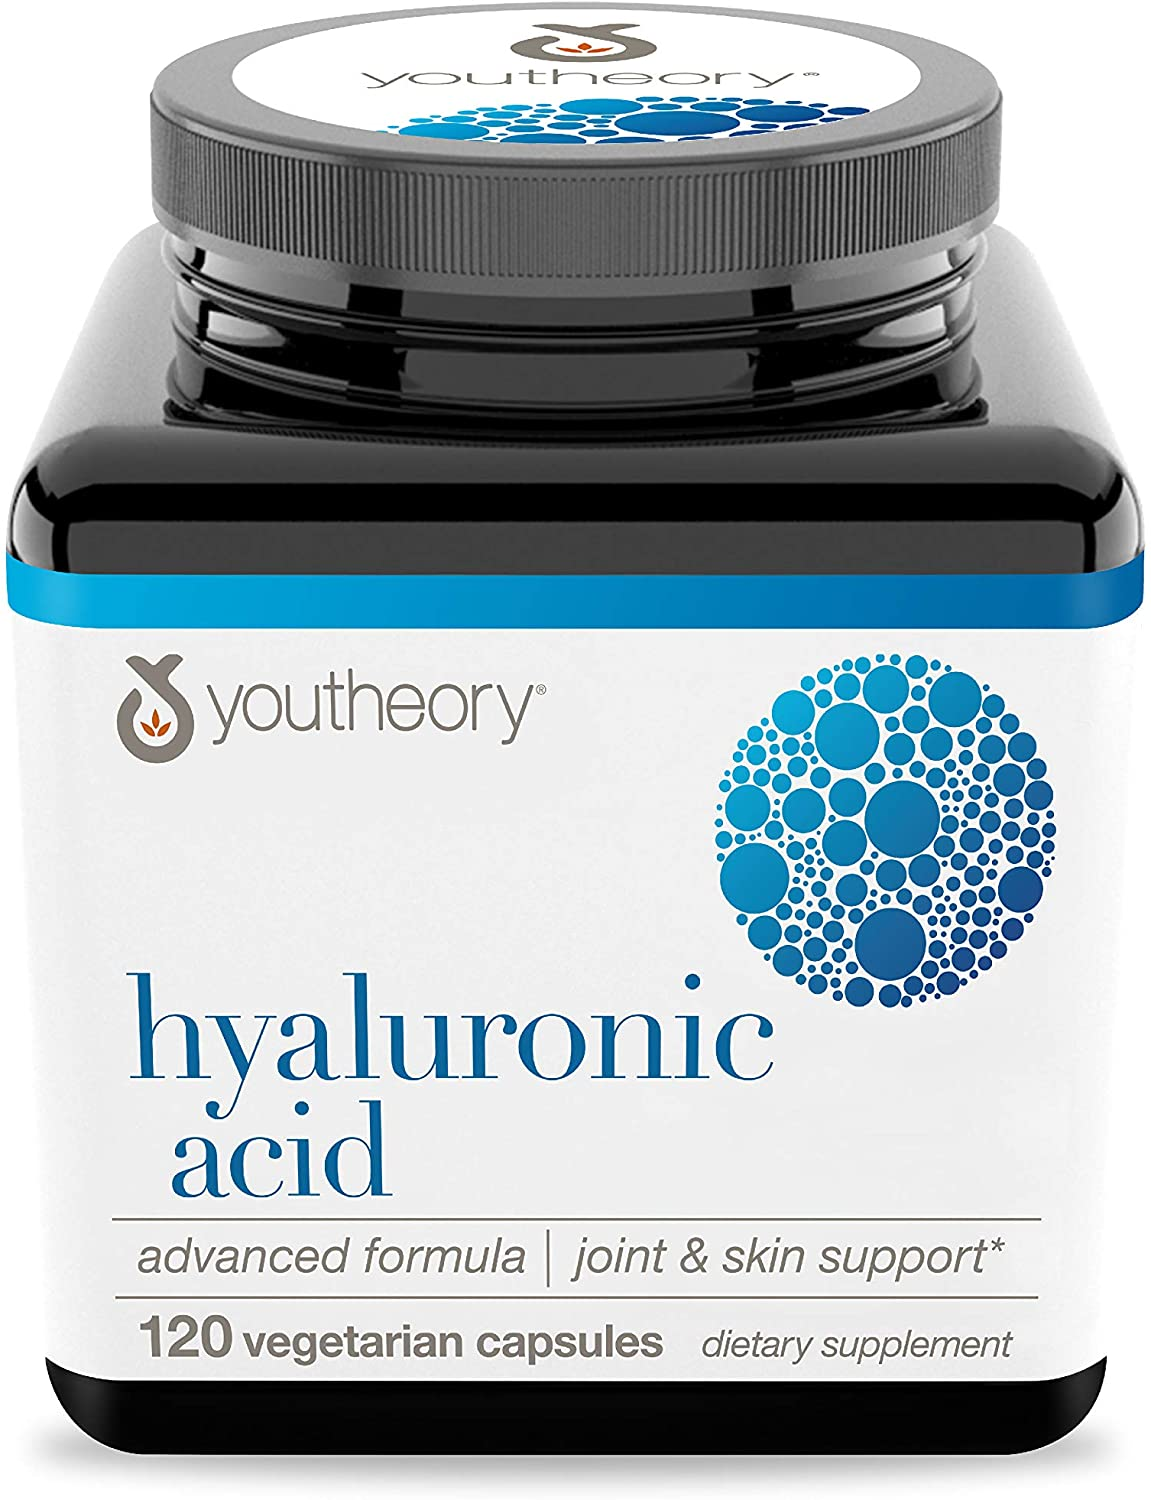 Youtheory Hyaluronic Acid Advanced - 120 Tablet